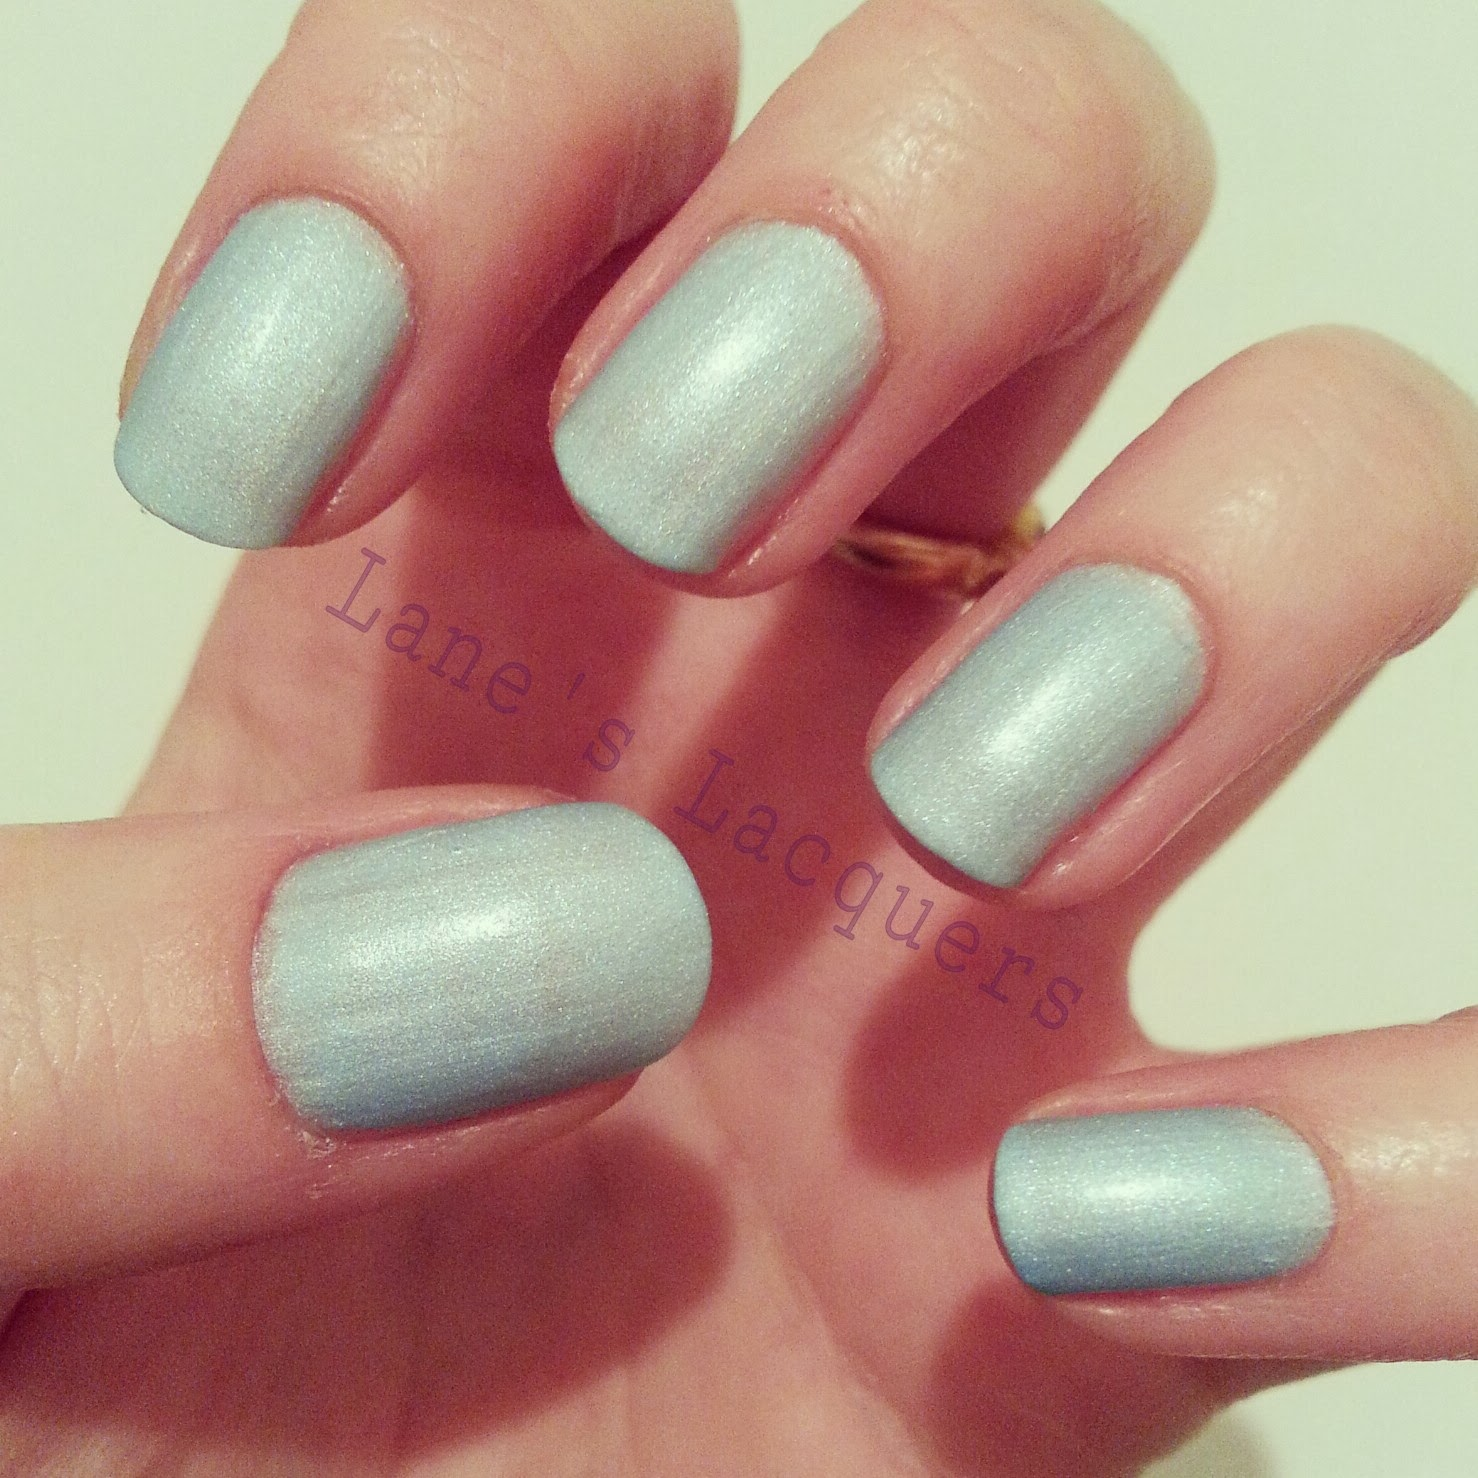 barry-m-silk-mist-swatch-manicure